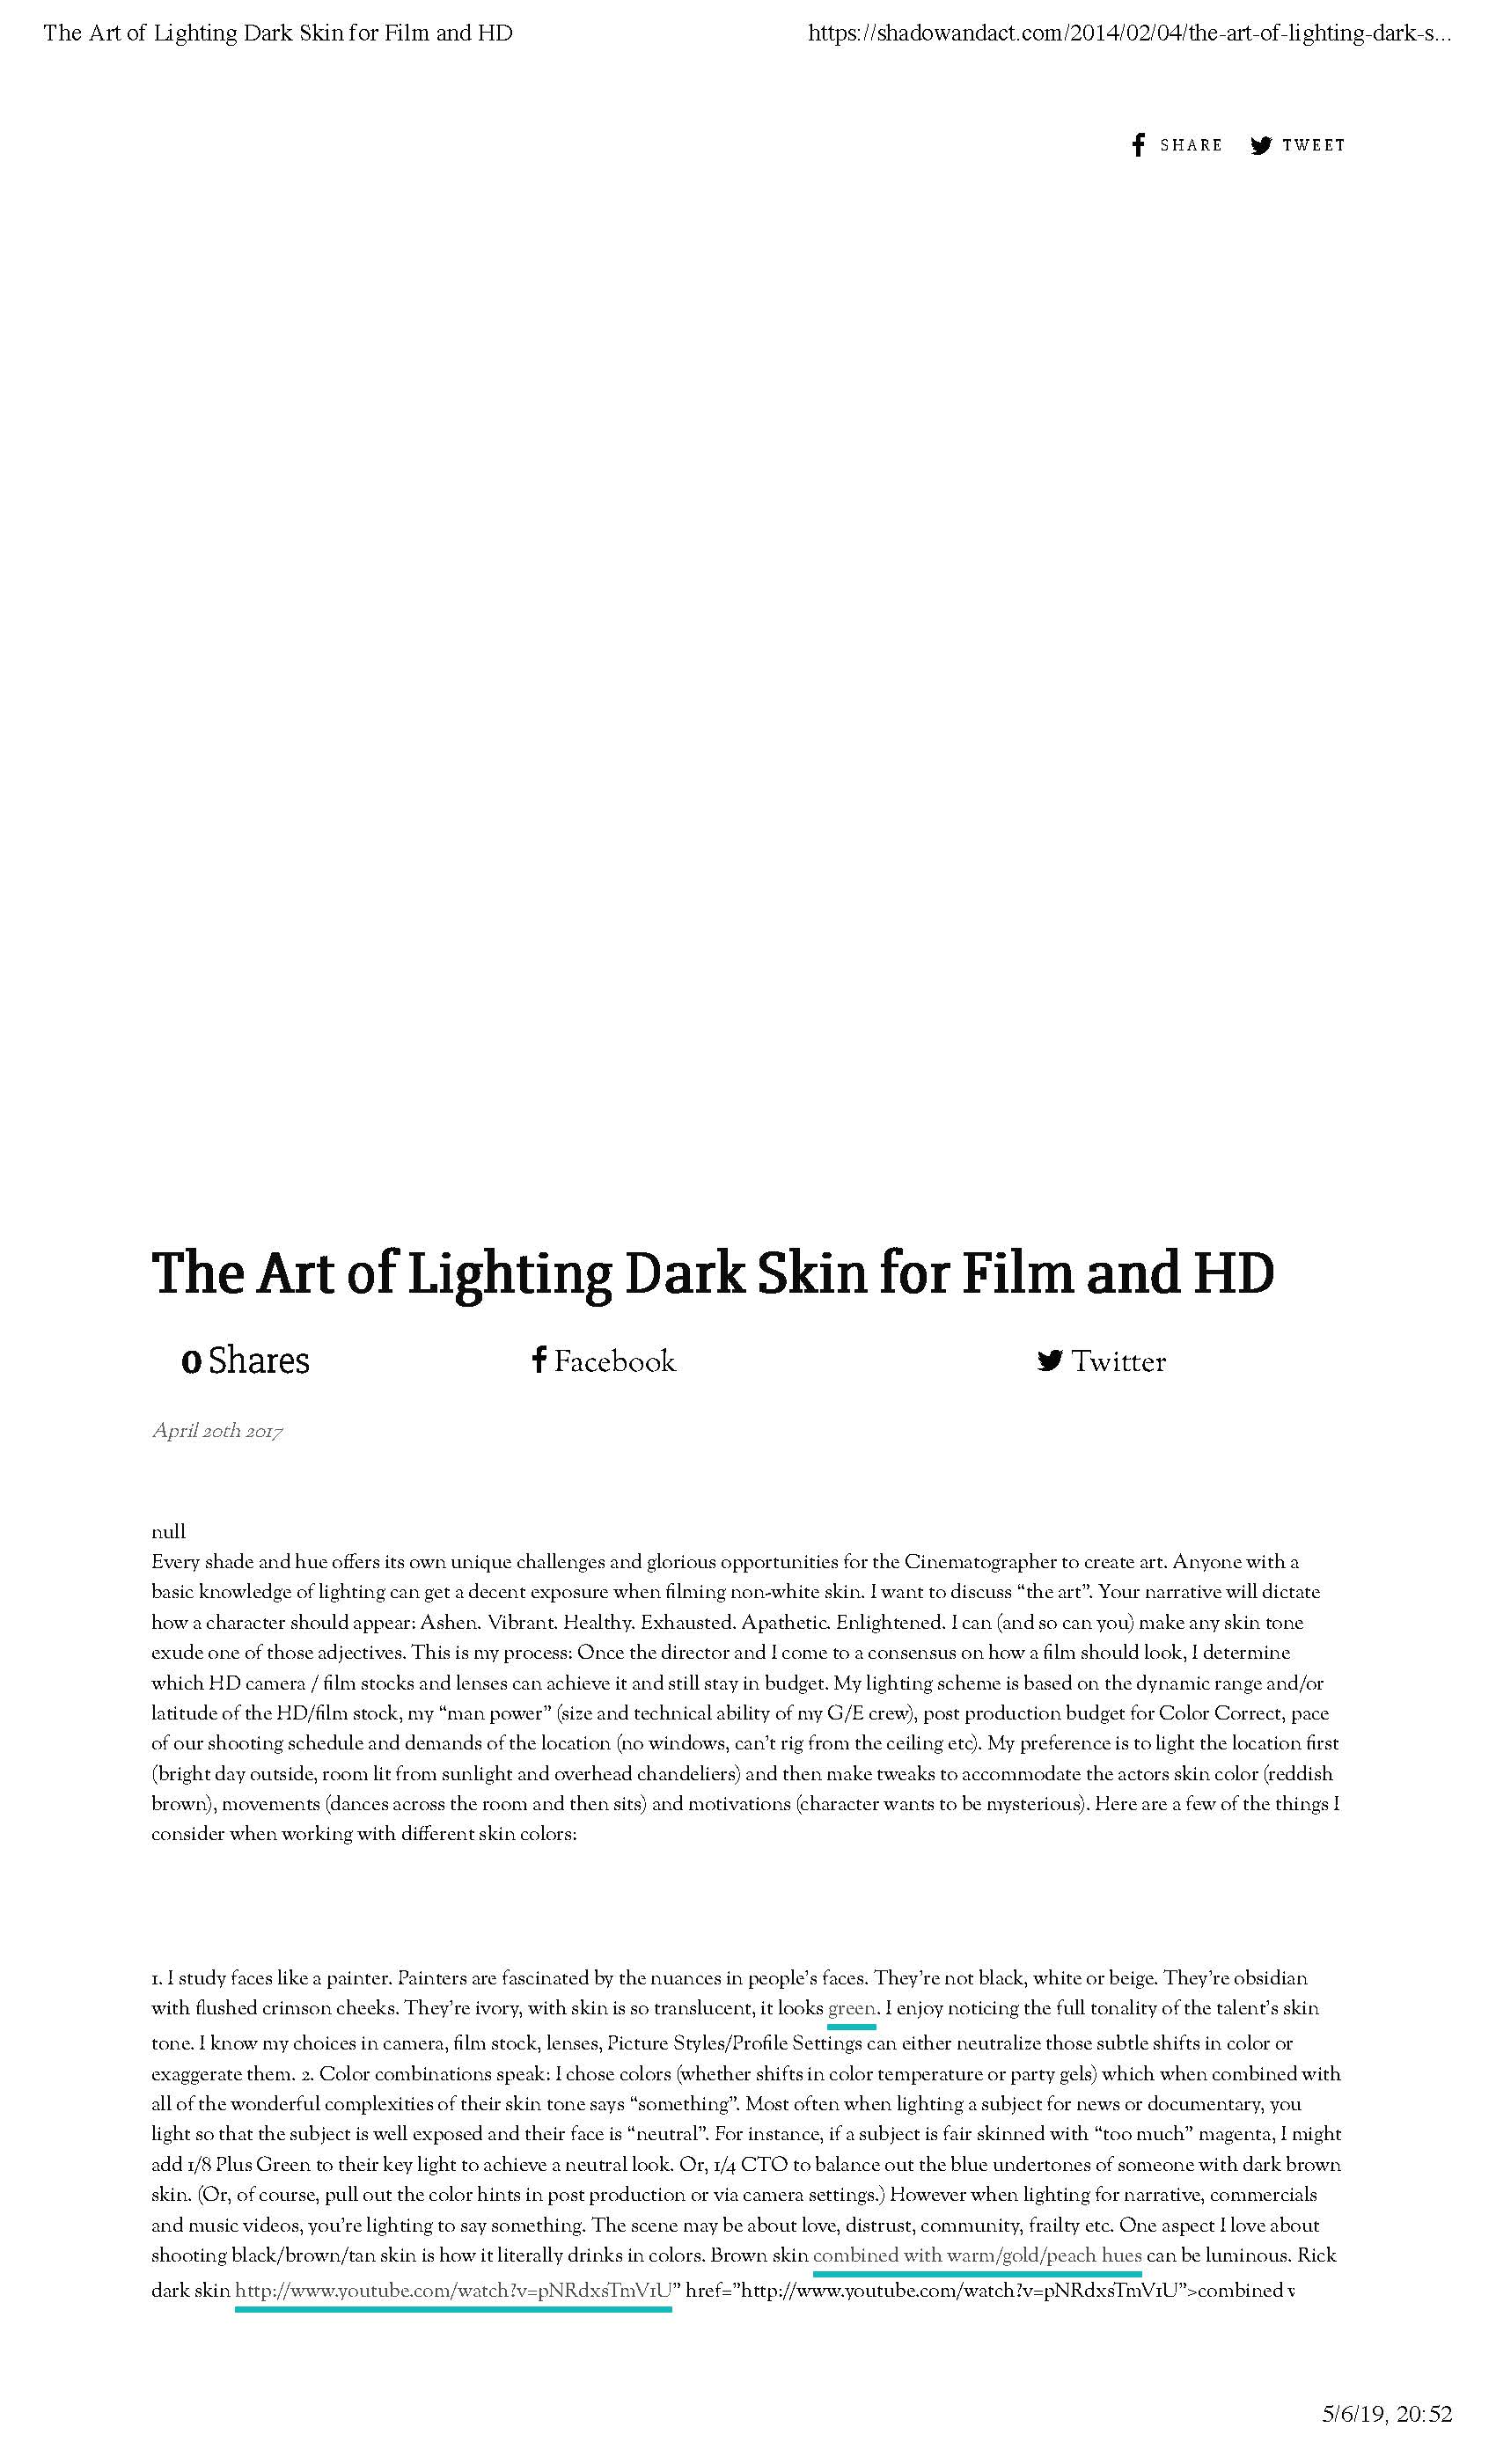 The Art of Lighting Dark Skin for Film and HD_Page_1.jpg